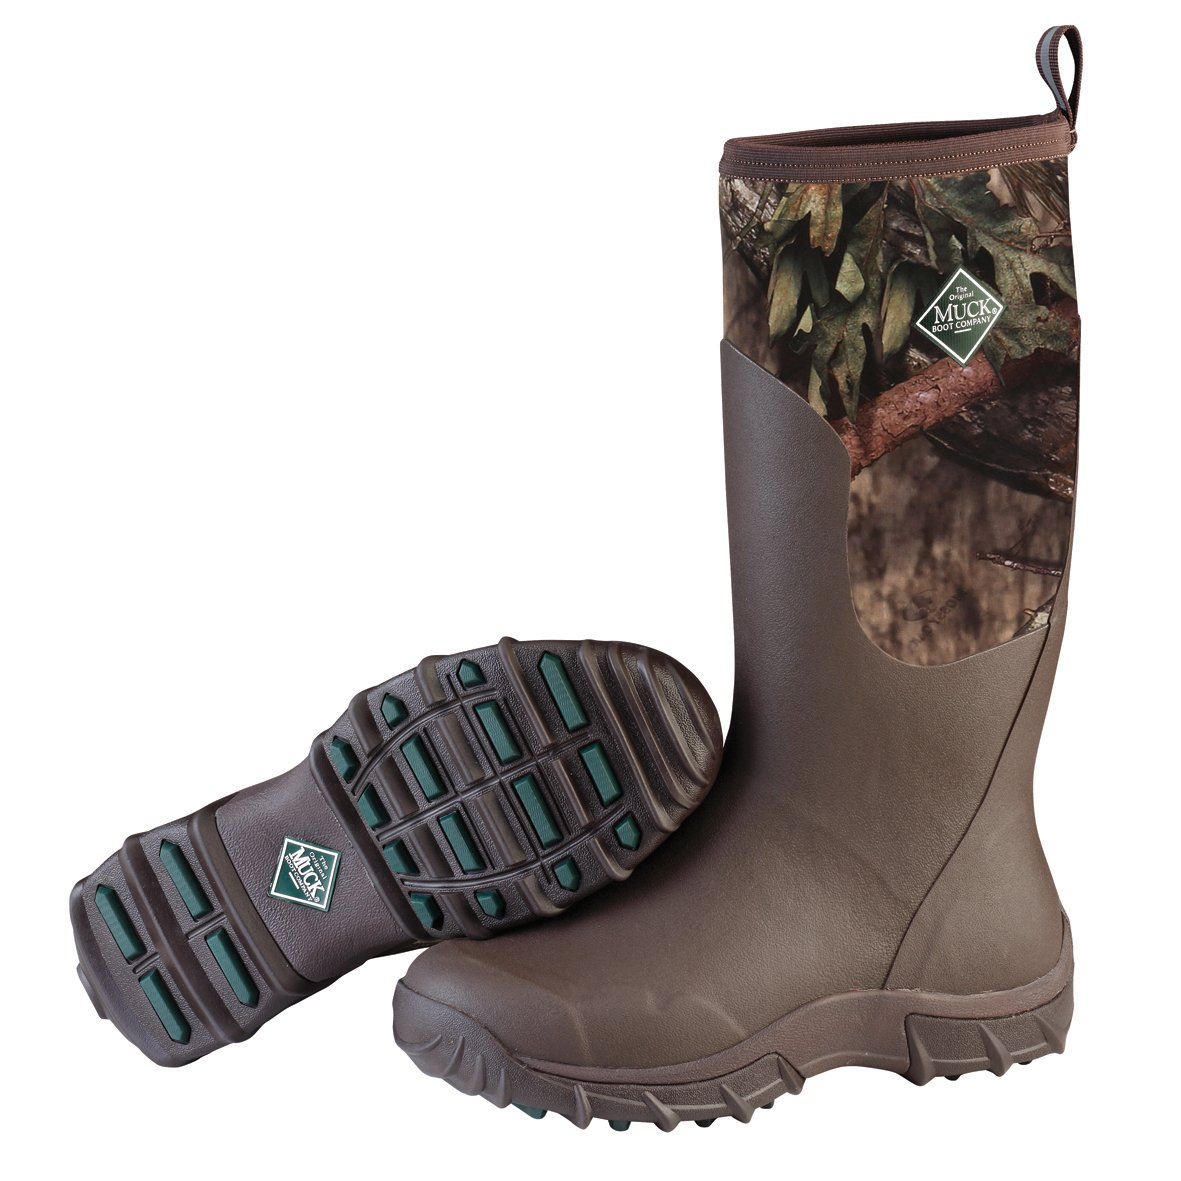 Muck Boot Men's Woody Sport II Hunting Shoes, Bark/Mossy Oak, 11 US/11-11.5 M US by Muck Boot